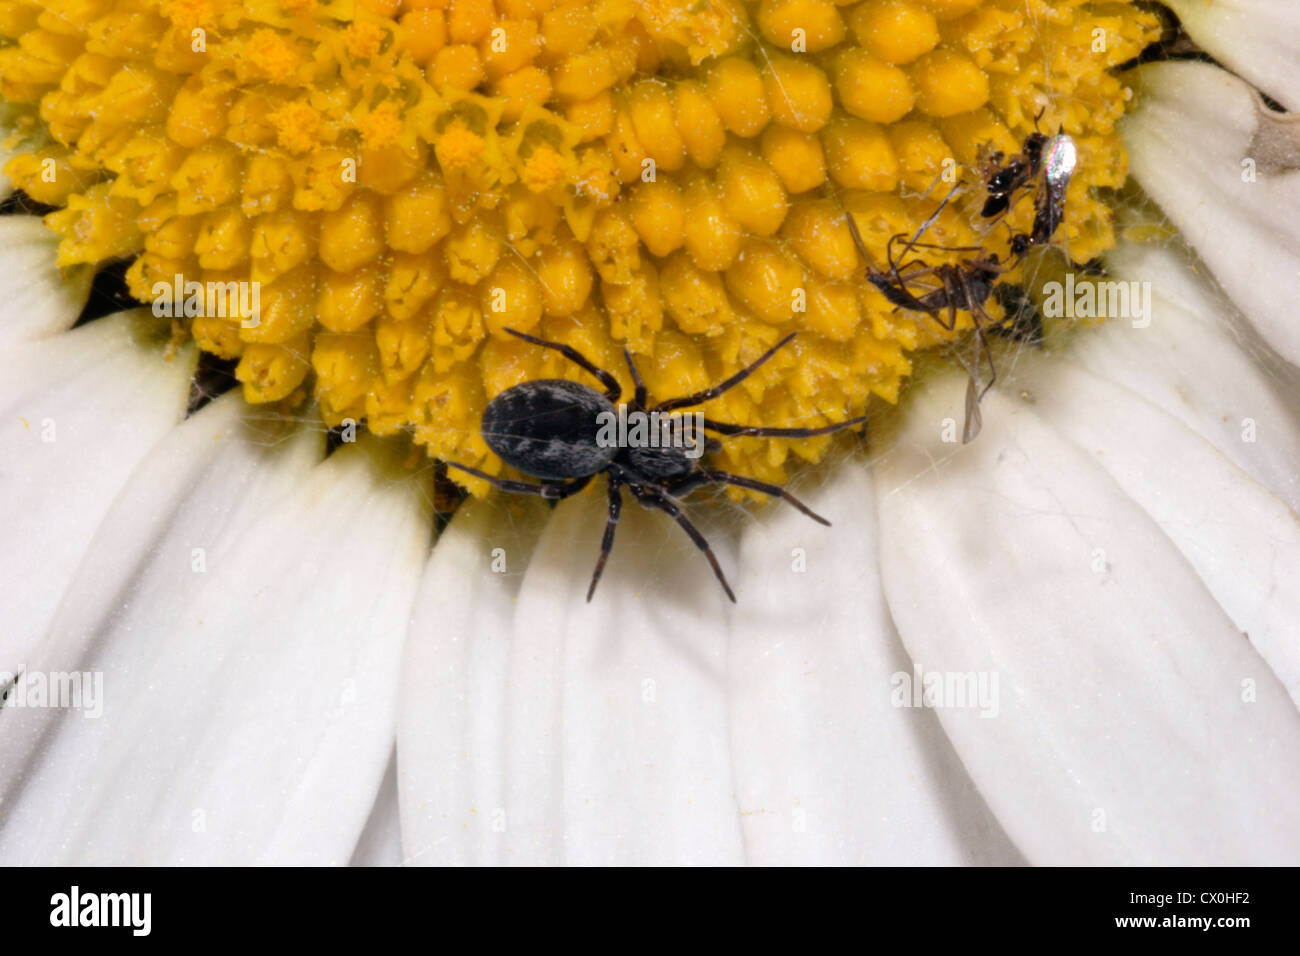 Common mesh-weaver / hackled-web weaver spider (Dictyna arundinacea : Dictynidae) in her tiny web on an oxeye daisy, - Stock Image